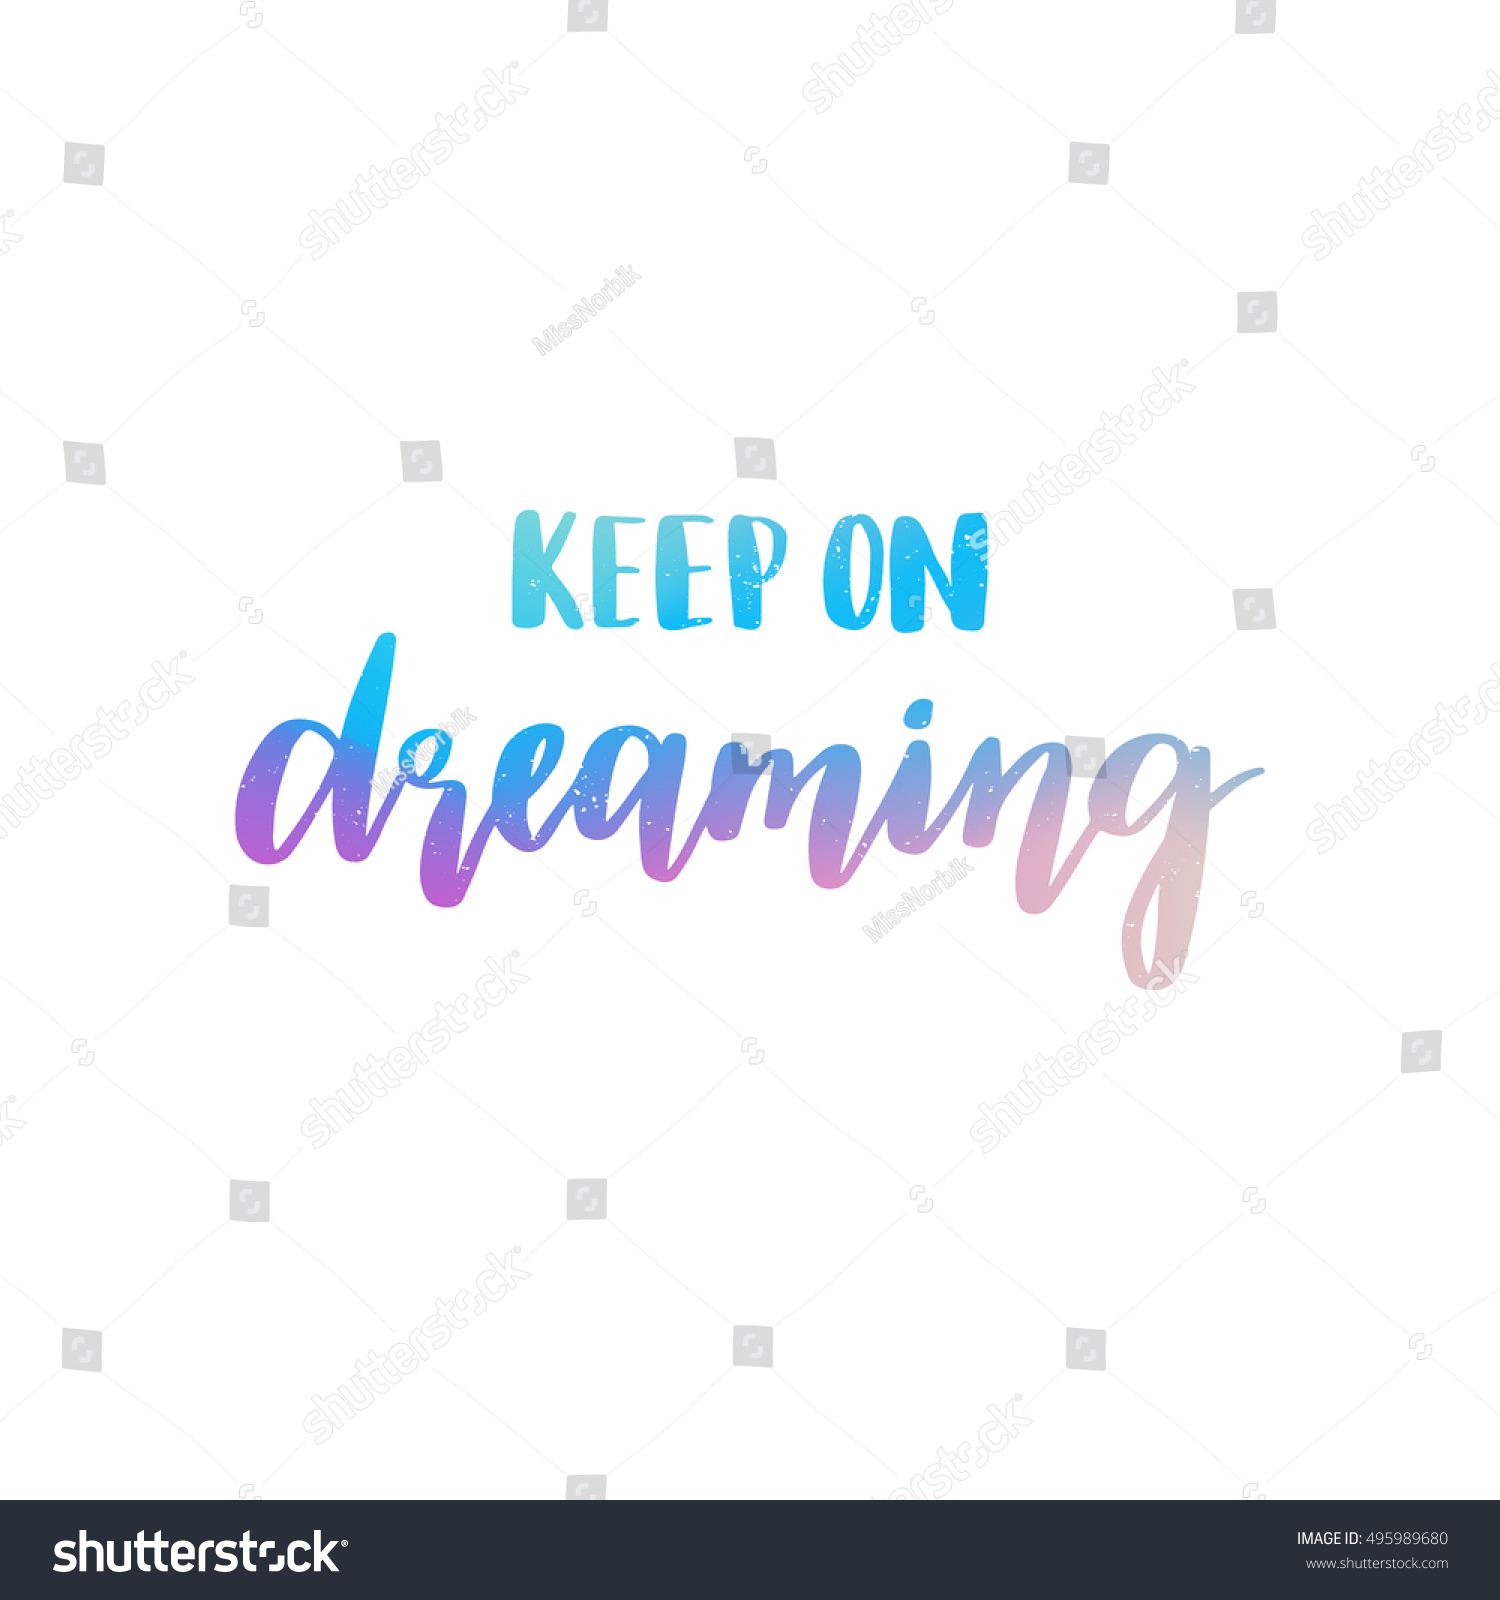 Vector Hand Drawn Motivational And Inspirational Quote - Keep On Dreaming. Colorful Calligraphic Banner - 495989680 : Shutterstock